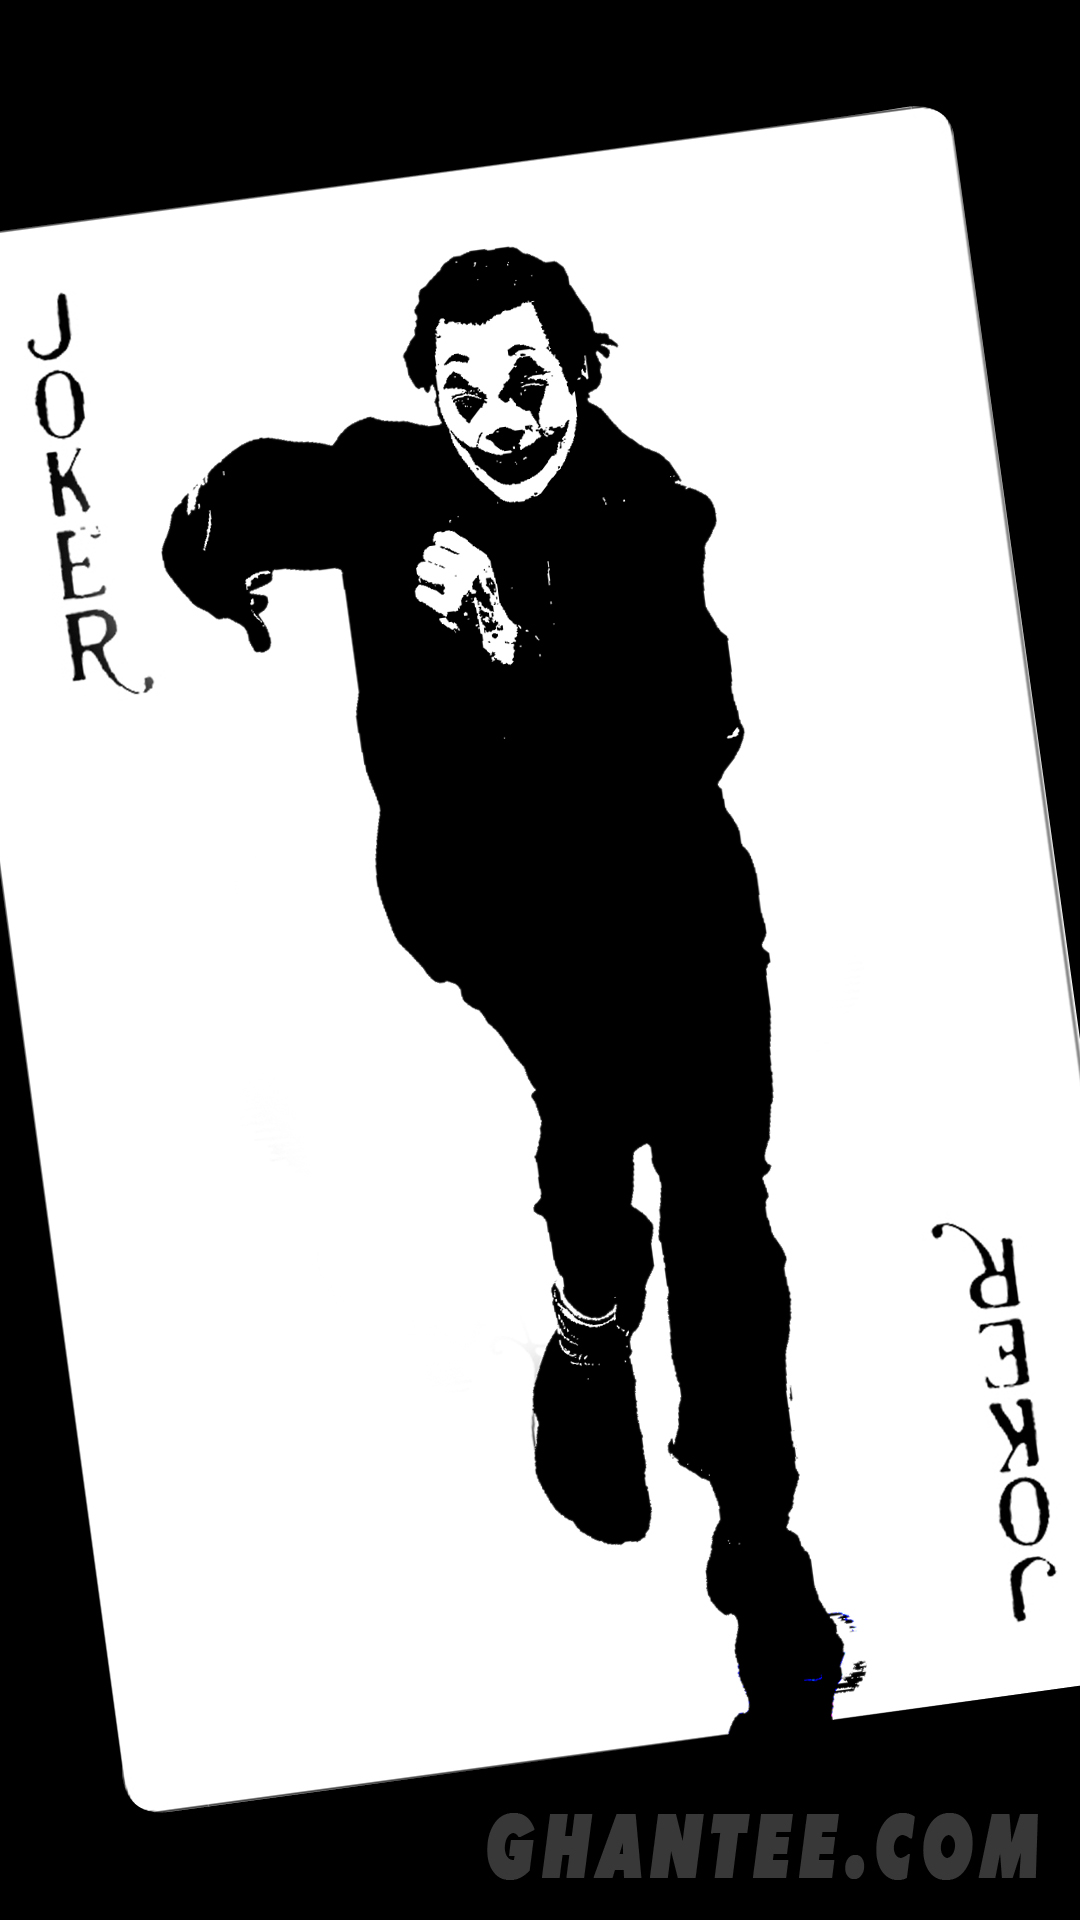 joker 2019 hd wallpaper for iphone and android